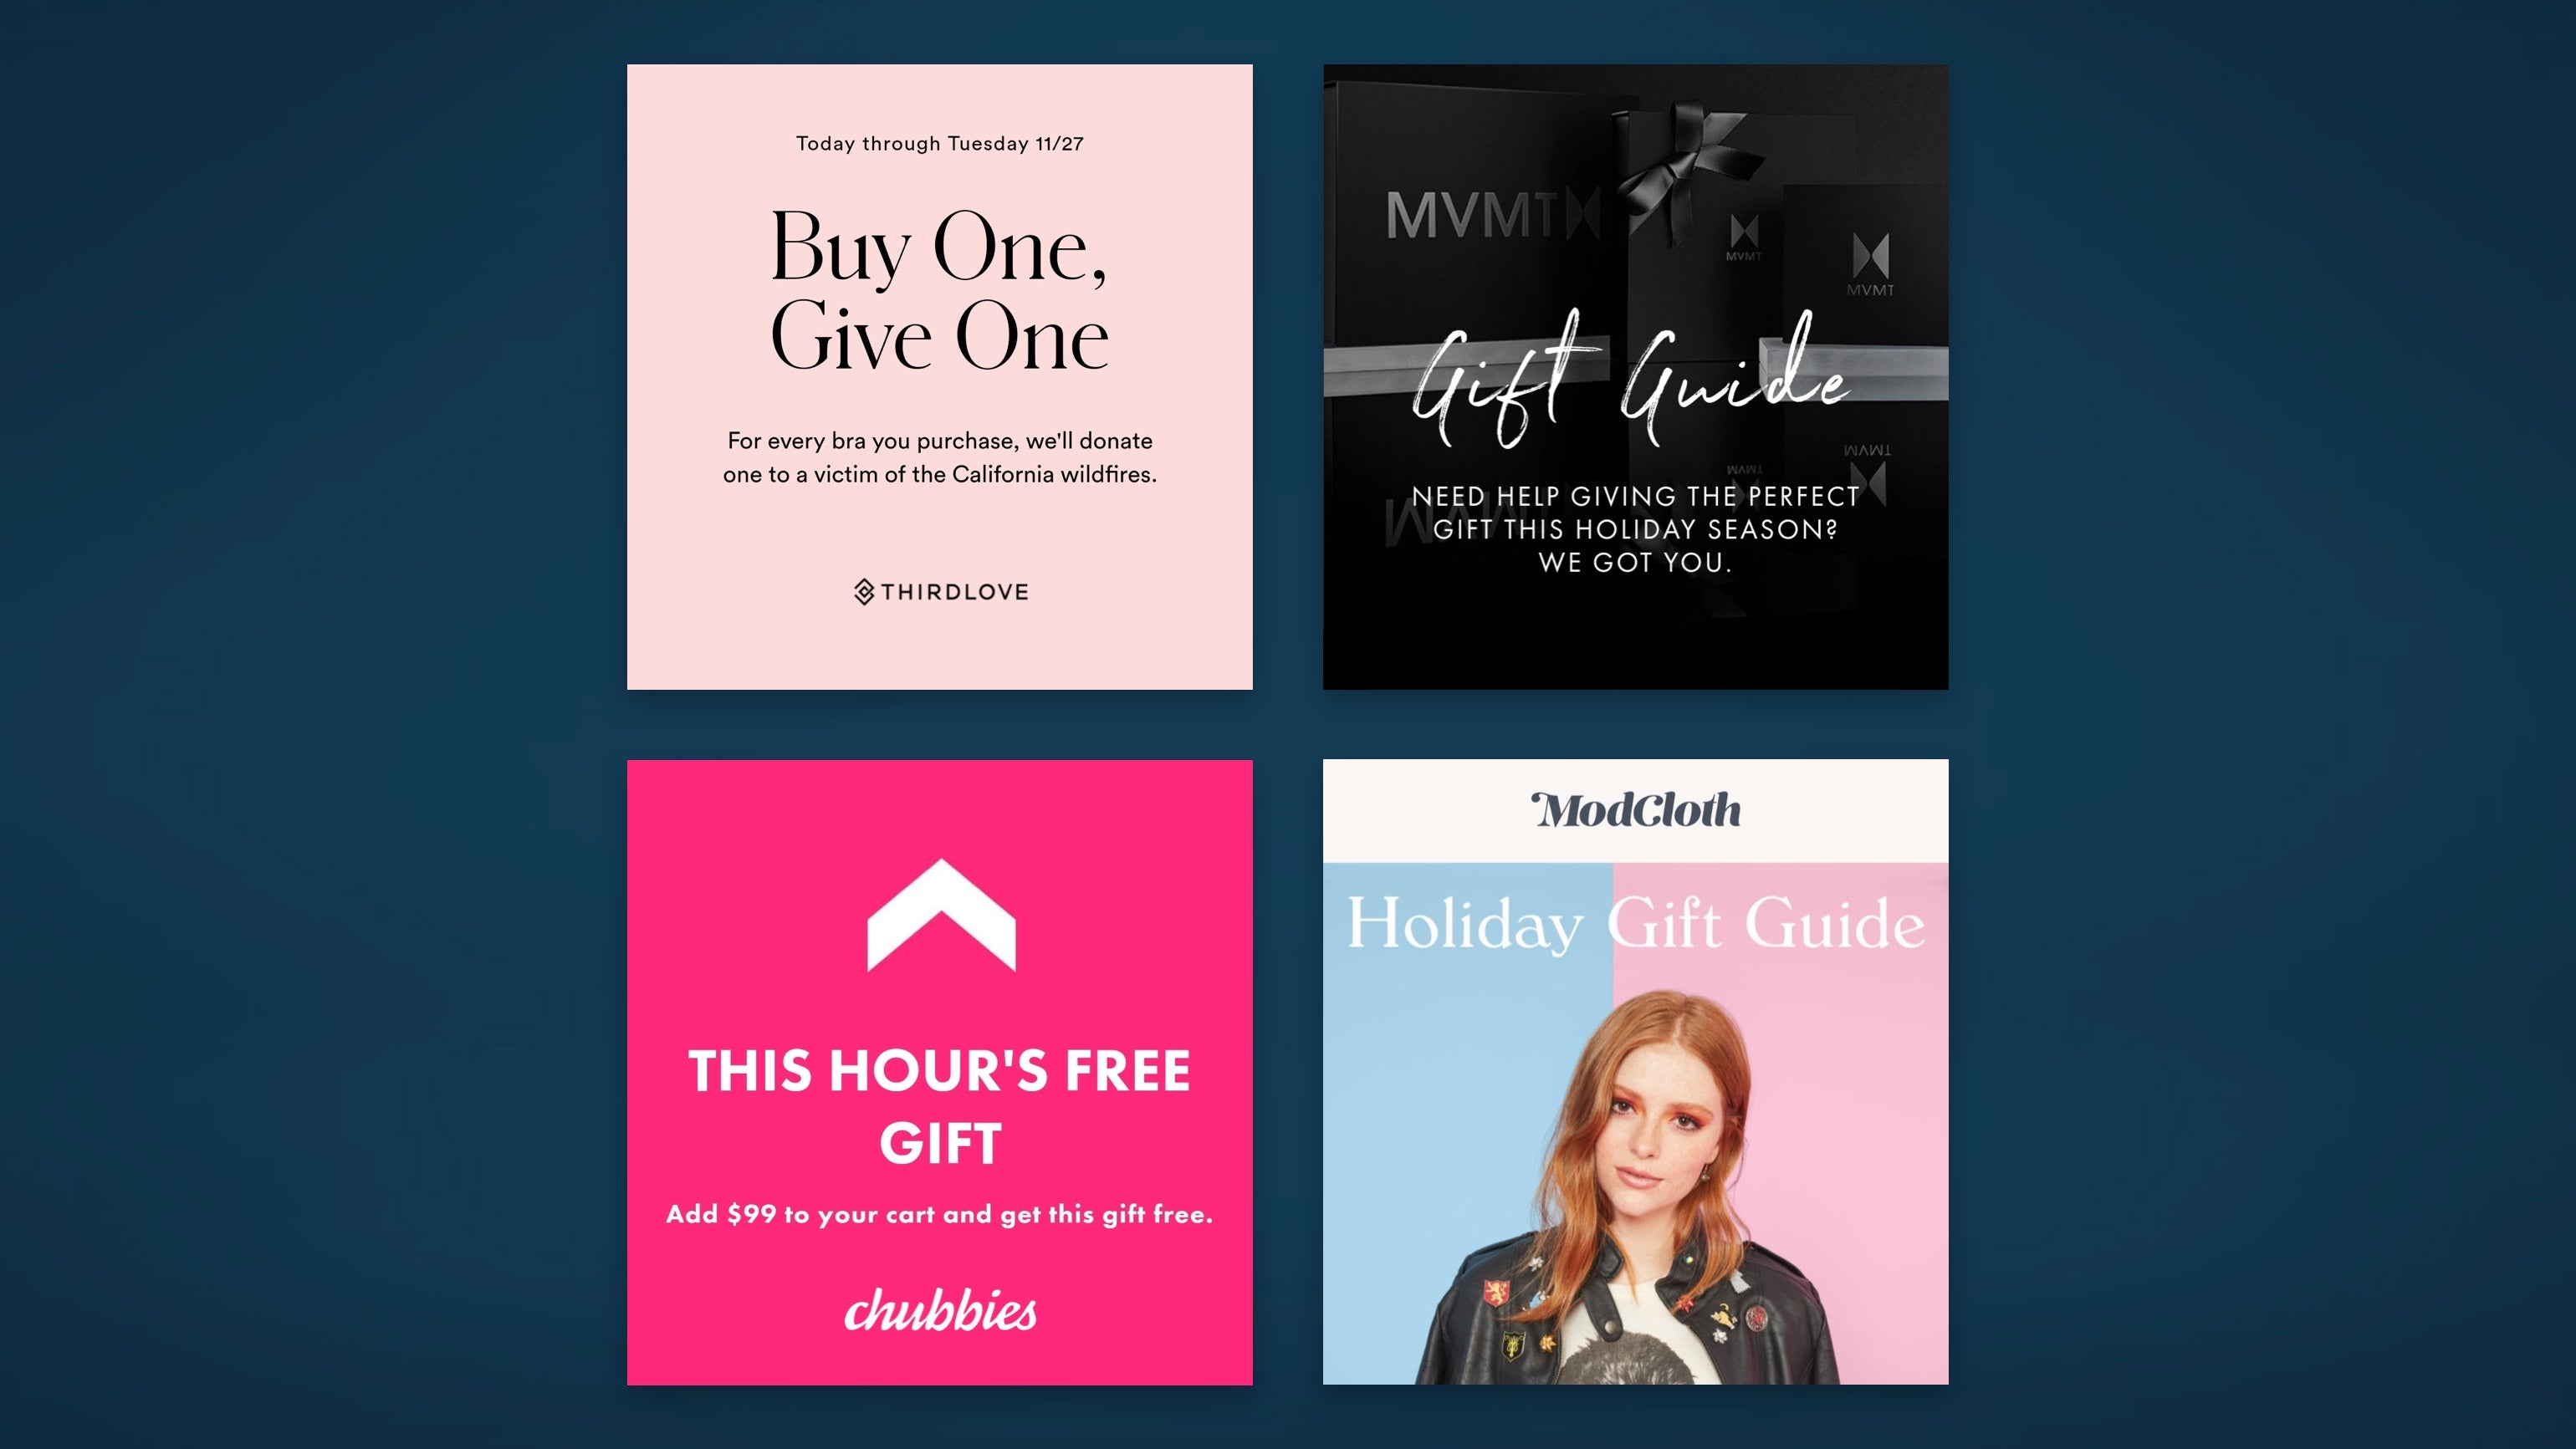 Gifting and gift guides ads for Black Friday, Cyber Monday